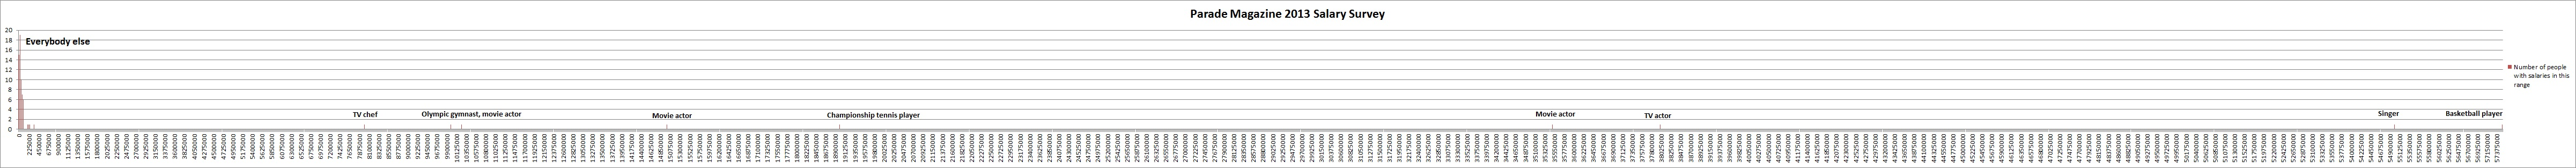 Parade 2013 salary survey